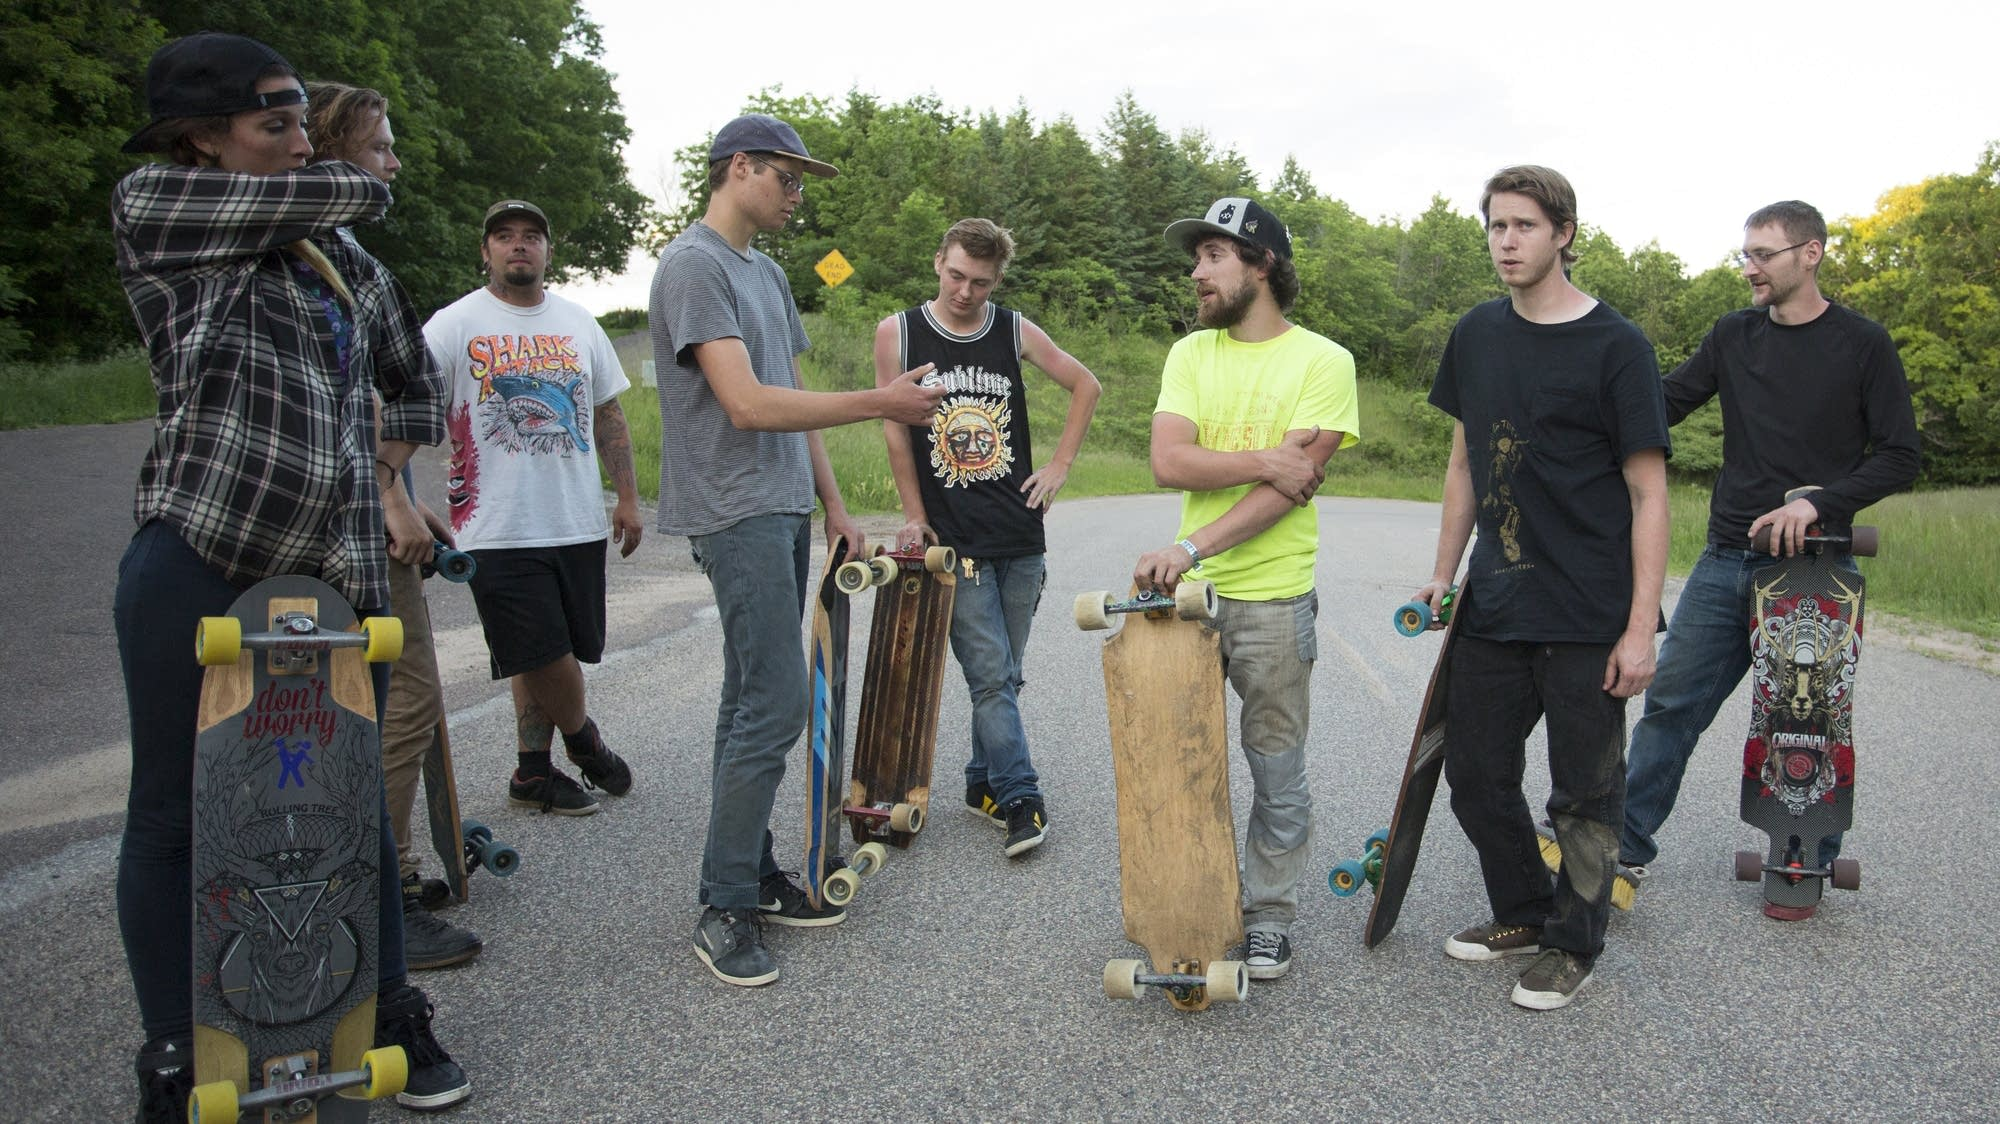 Longboarders gather at the top of a hill.